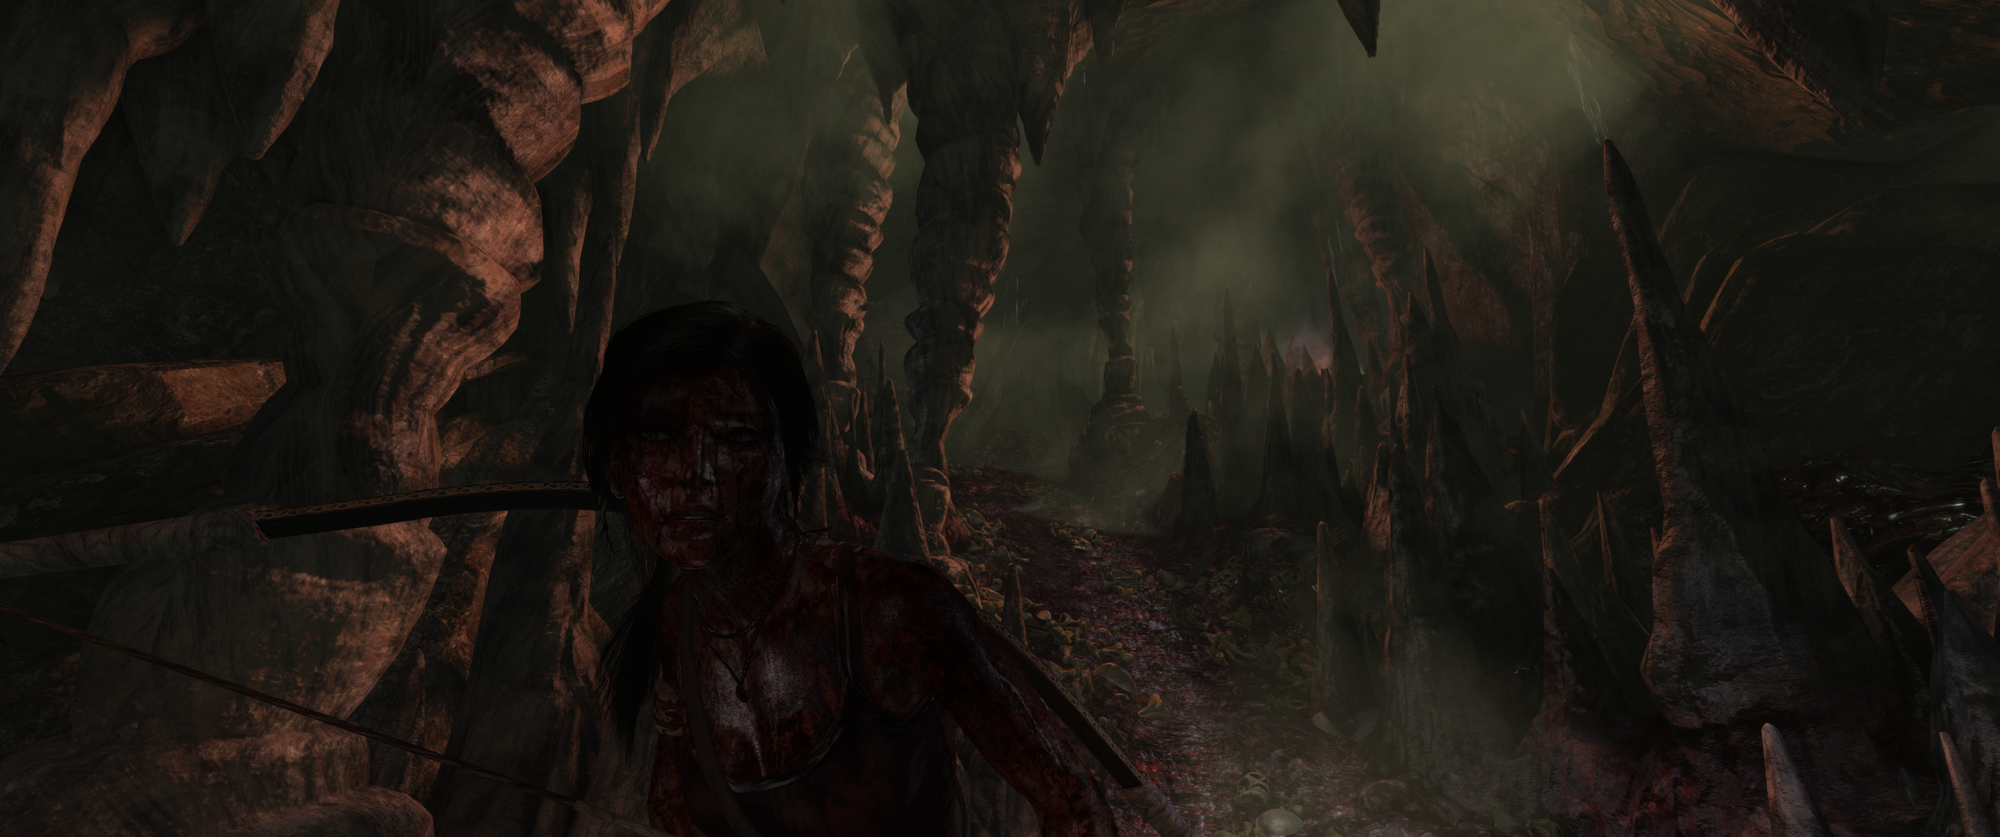 TombRaider_2018_07_24_22_03_26_462.png